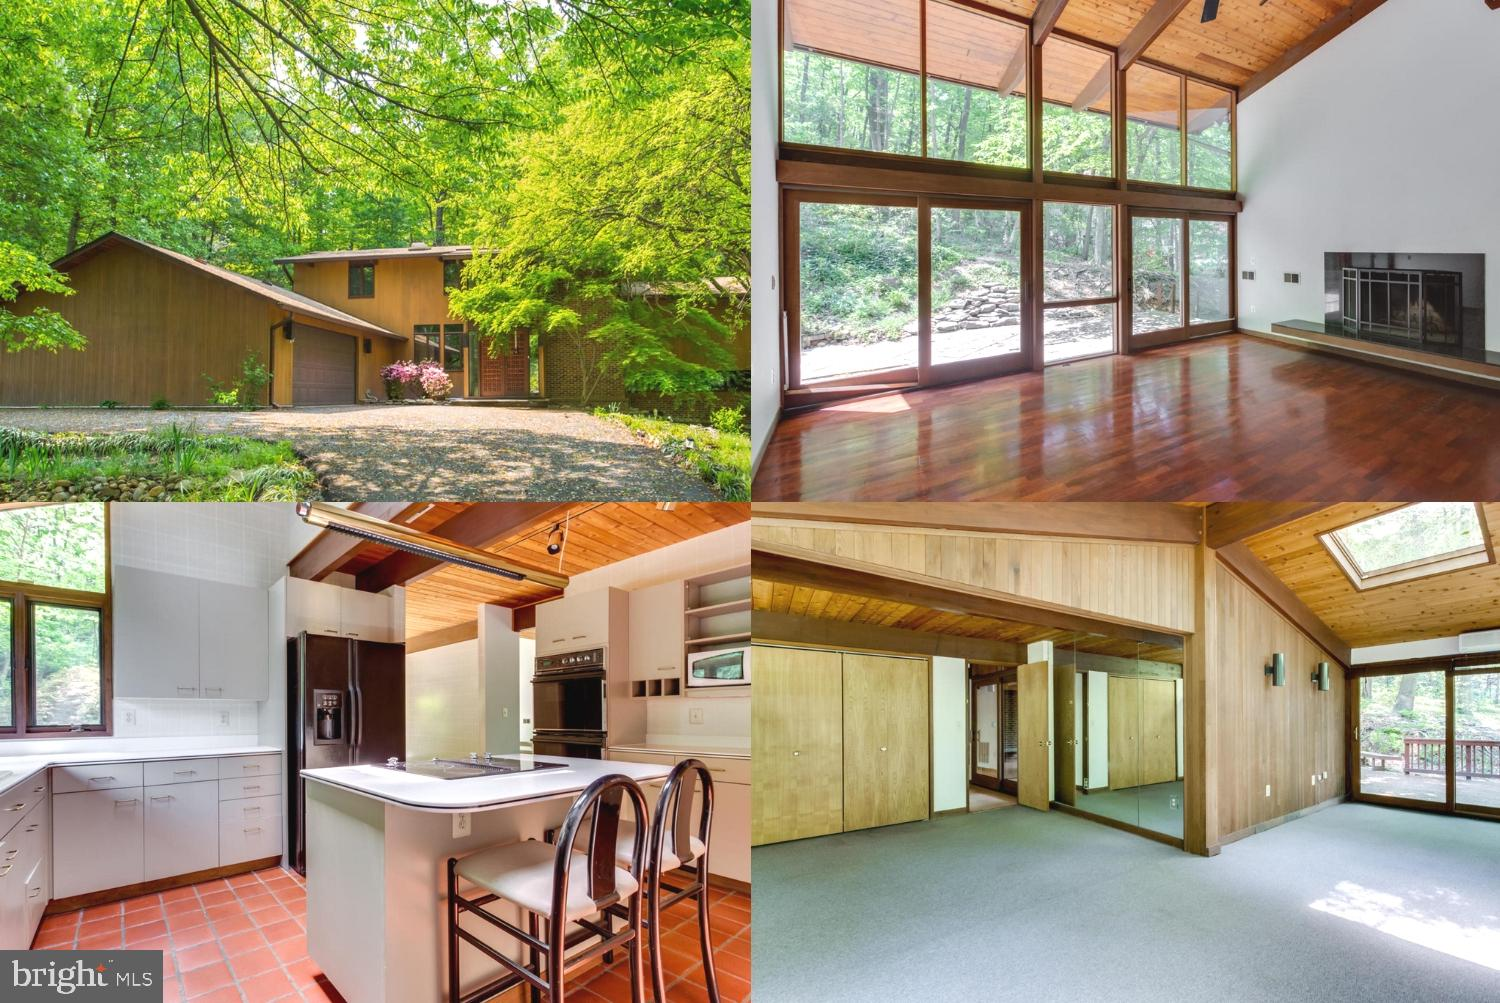 Retreat from work and relax in your convenient and contemporary 4BR 4BA home in Alexandria. Close to DC this unique home has easy access to I-395. But once your home you are surrounded by a 1 acre wooded lot. It's private but with floor to ceiling windows and skylights, there is lots of natural light. A large living room is accented by beautiful hardwood floors and a warm wood burning fireplace, as well as a cathedral ceiling. The next level down leads to a comfortable family room with another wood burning fireplace which overlooks the indoor solarium which features a sunken jacuzzi hot tub. The separate and private master BR suite is complimented by a large master BA with its own soaking tub. The gourmet kitchen features include a dual wall oven, tiled floor, stainless steel appliances and a central island. Upstairs you can retreat to a loft study overlooking the living room with backyard views. Do not miss this one-of-a-kind residence/retreat!